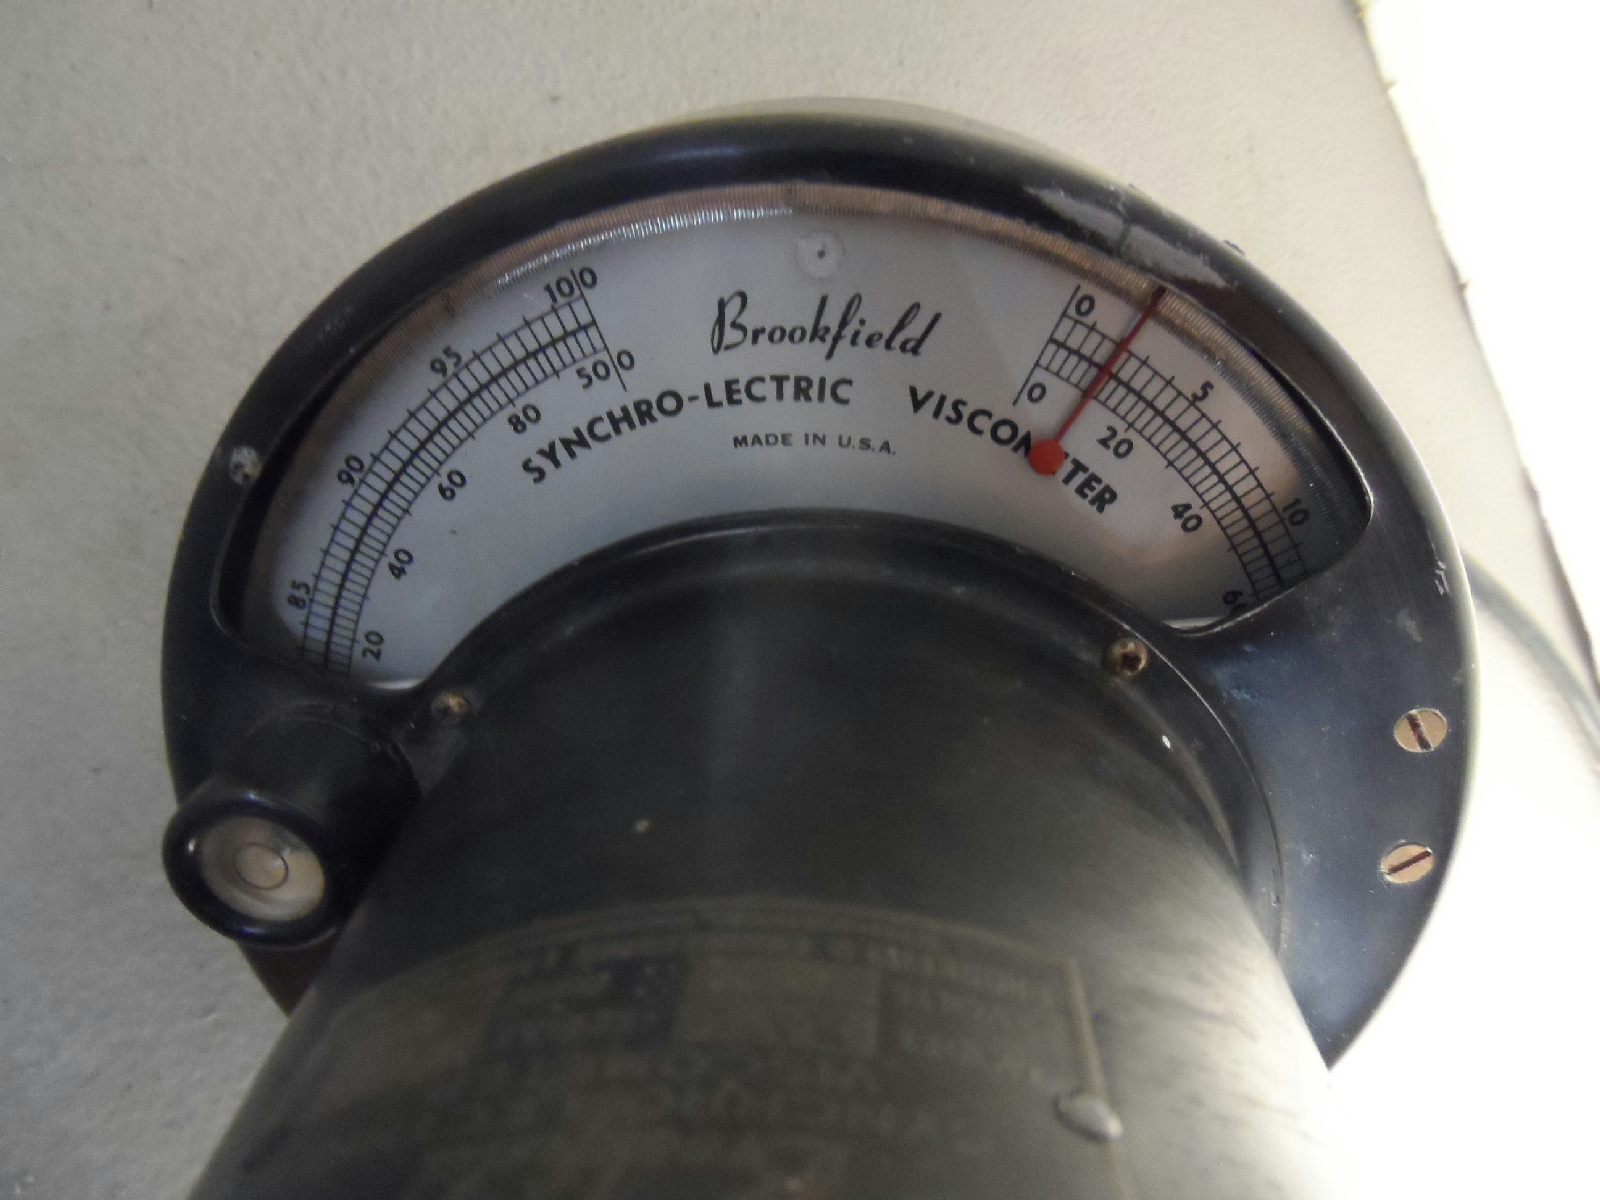 Brookfield synchro-lectric viscometer